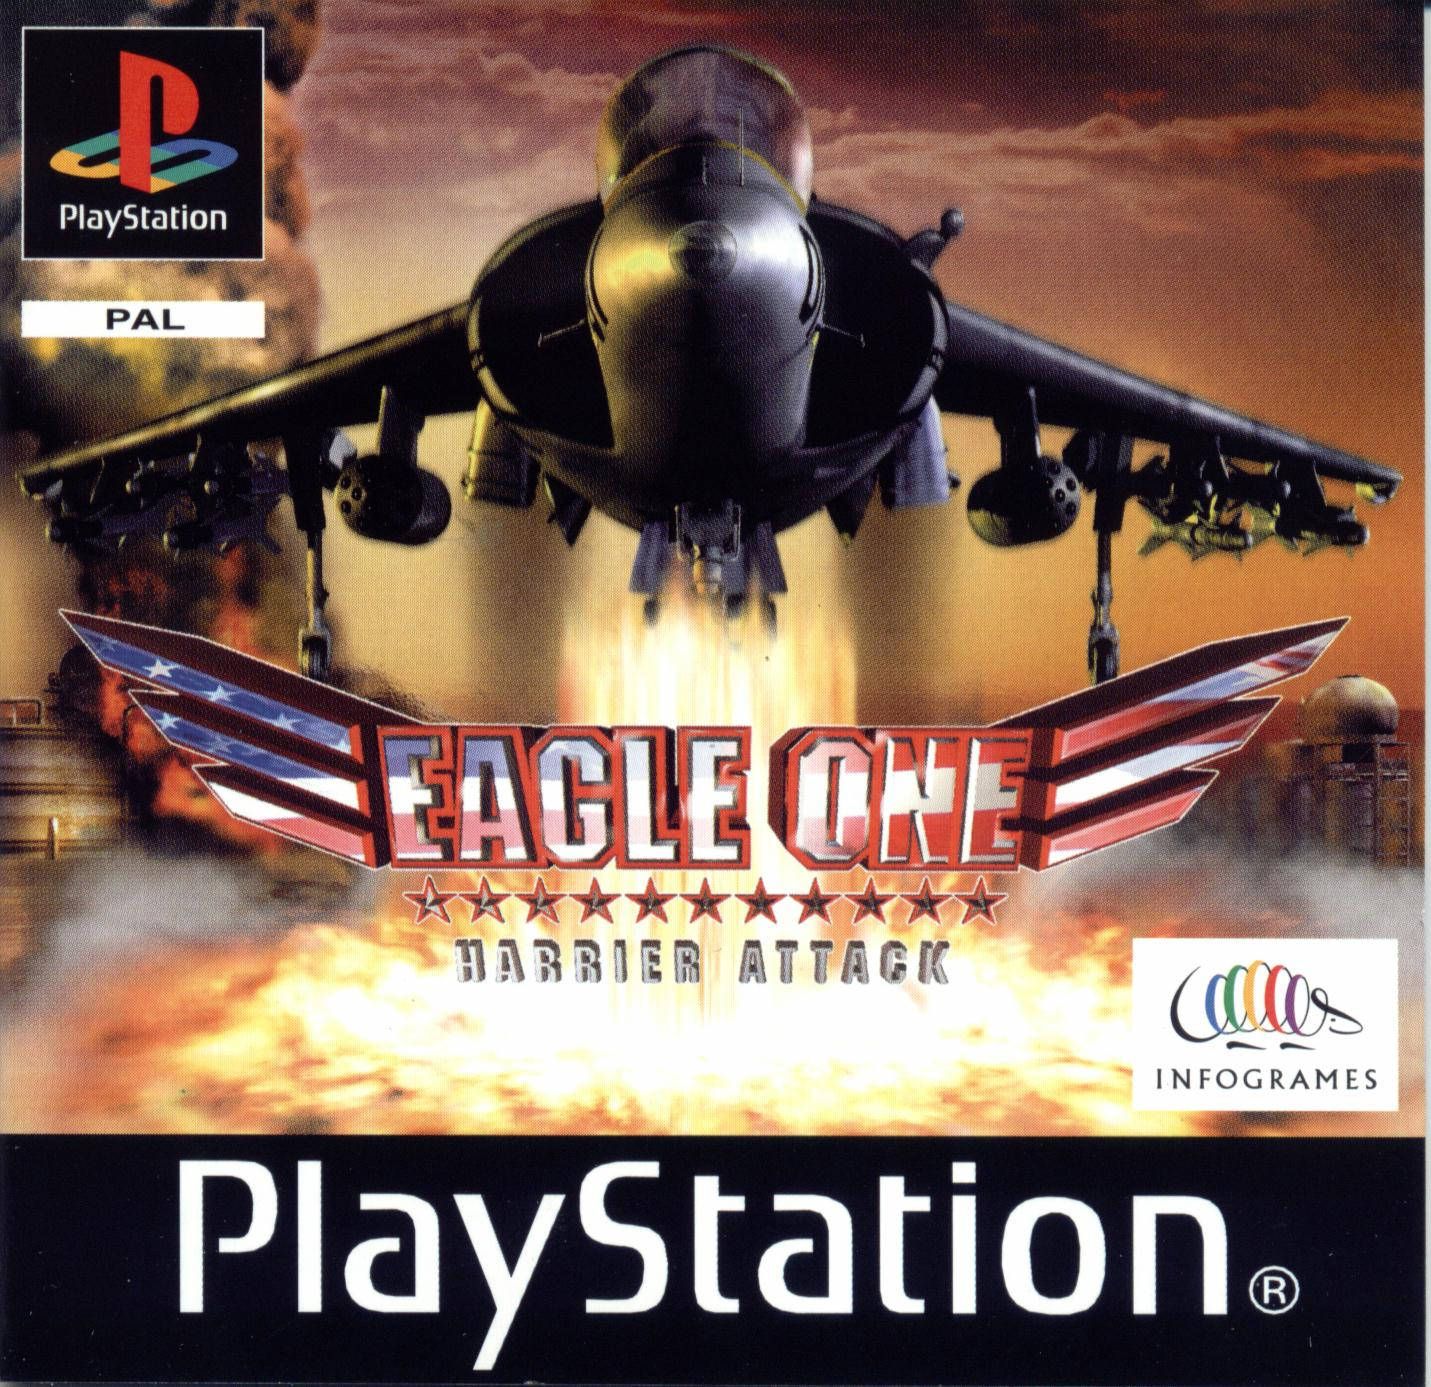 eagle_one_psx_cover.jpg